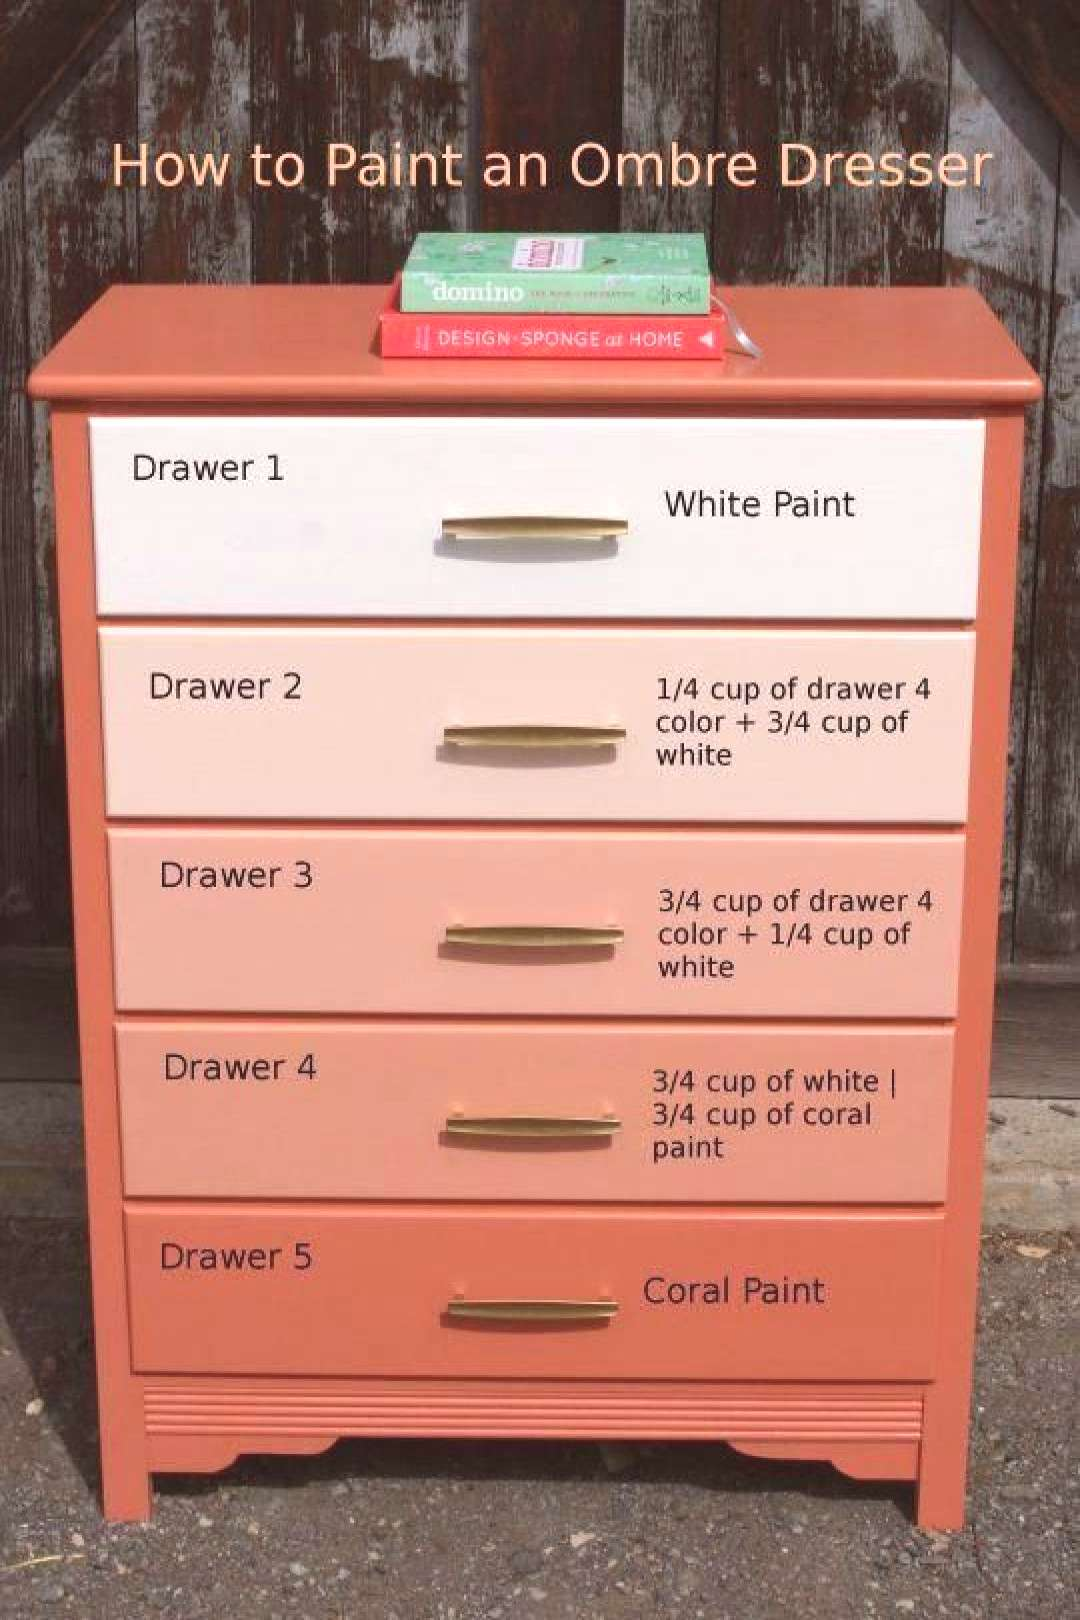 DIY Gradient (Ombre) Painted Dresser.., not a fan of the coral but good to know for mixing.